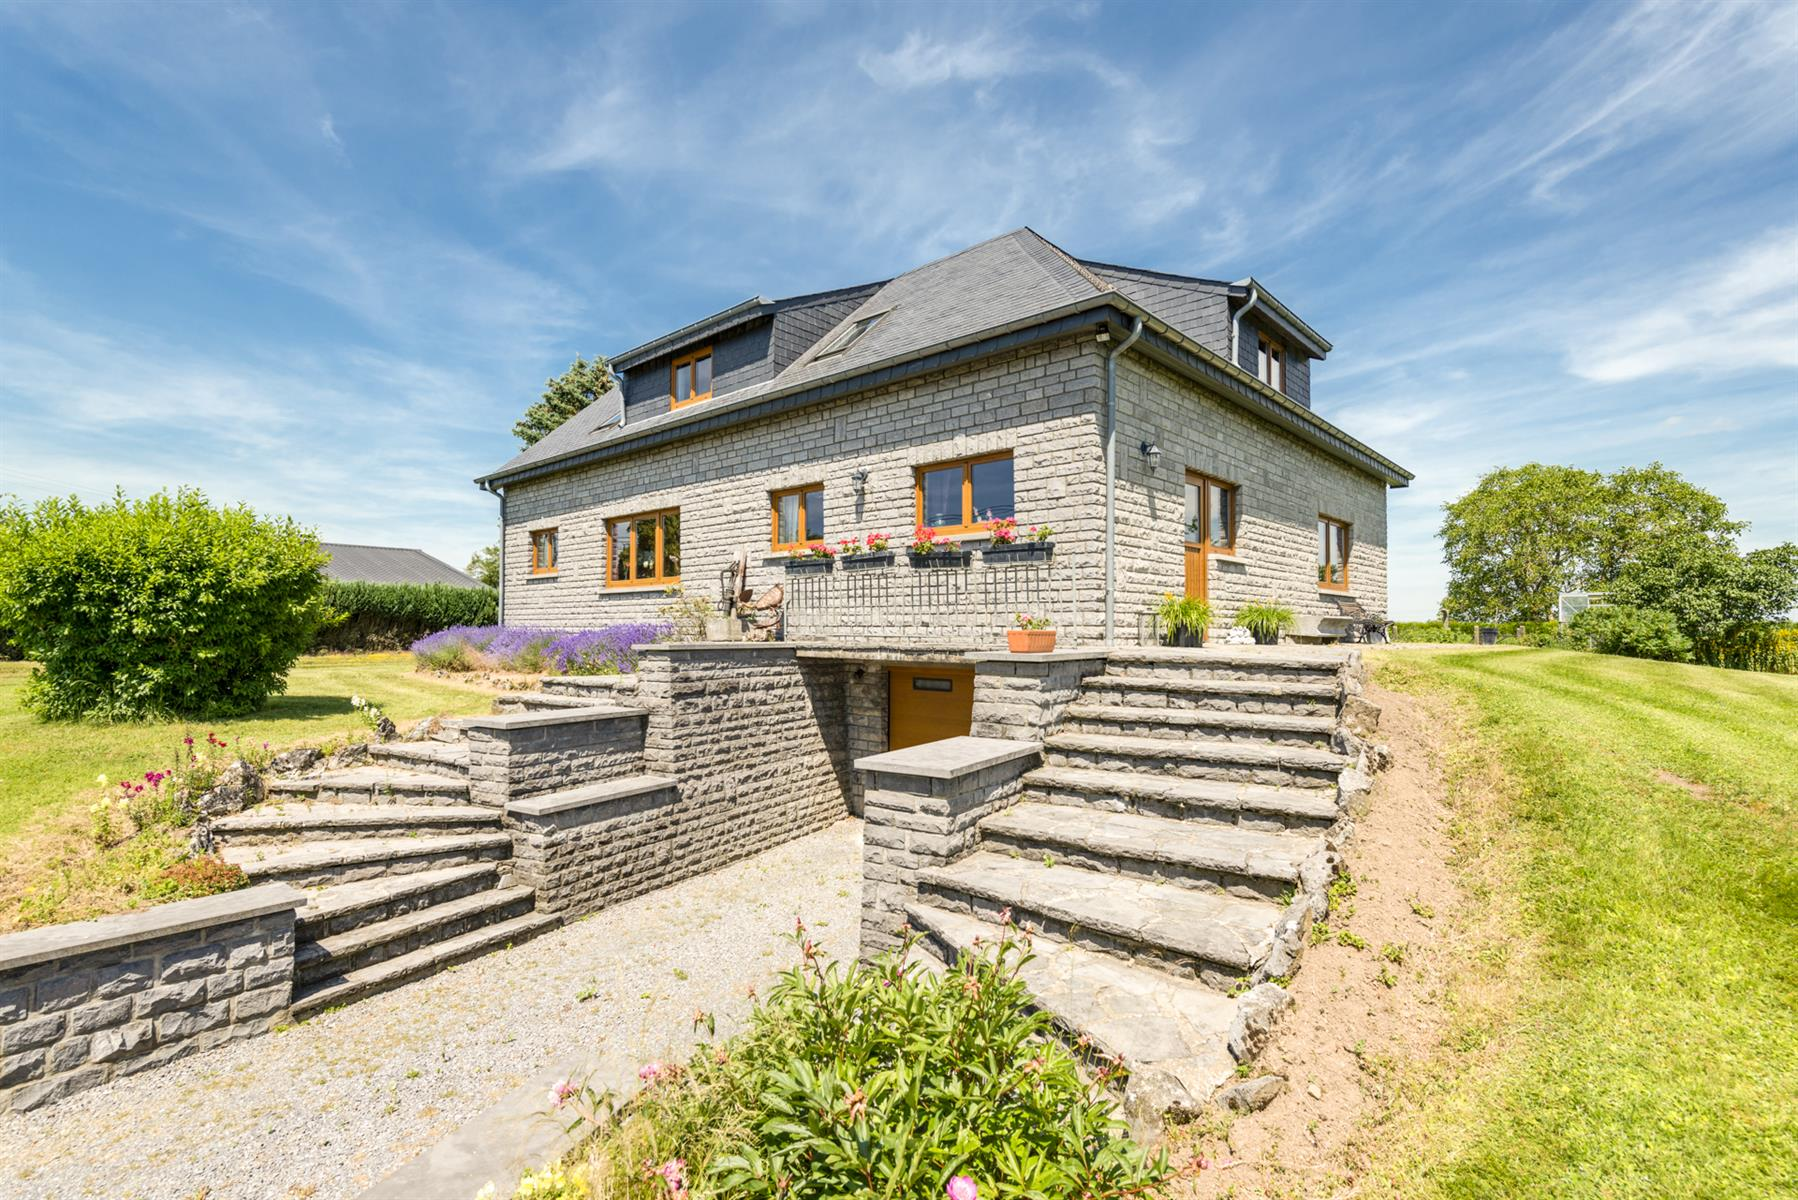 Huis - Ciney Braibant - #3886564-26